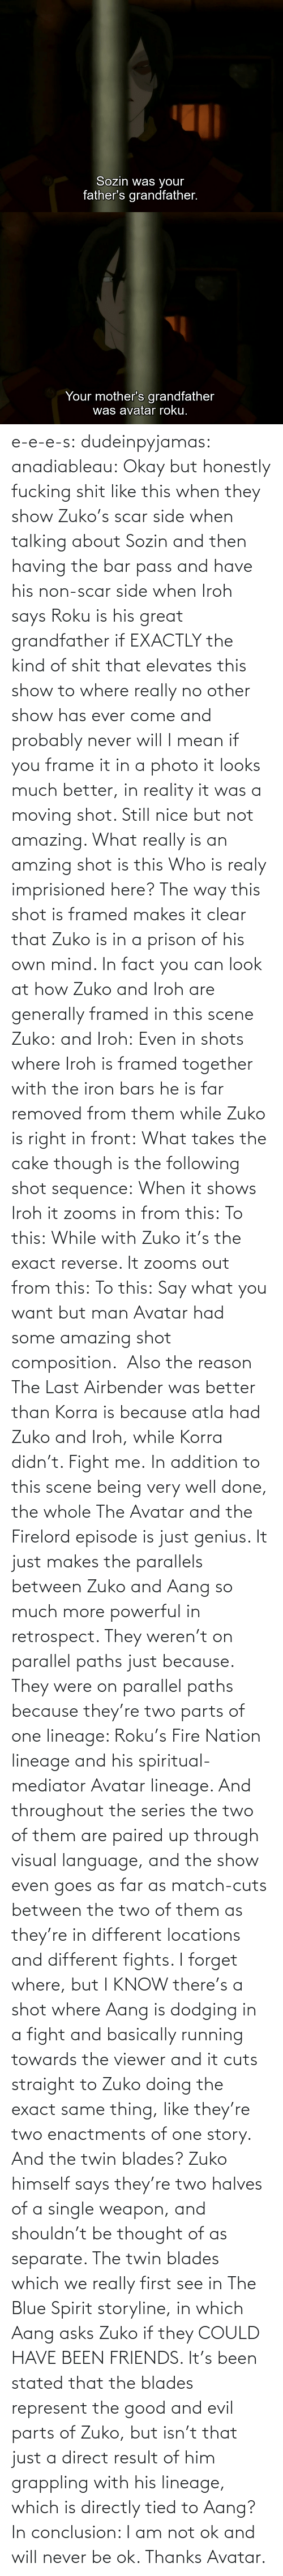 clear: e-e-e-s: dudeinpyjamas:   anadiableau: Okay but honestly fucking shit like this when they show Zuko's scar side when talking about Sozin and then having the bar pass and have his non-scar side when Iroh says Roku is his great grandfather if EXACTLY the kind of shit that elevates this show to where really no other show has ever come and probably never will I mean if you frame it in a photo it looks much better, in reality it was a moving shot. Still nice but not amazing. What really is an amzing shot is this Who is realy imprisioned here? The way this shot is framed makes it clear that Zuko is in a prison of his own mind. In fact you can look at how Zuko and Iroh are generally framed in this scene Zuko: and Iroh: Even in shots where Iroh is framed together with the iron bars he is far removed from them while Zuko is right in front:  What takes the cake though is the following shot sequence: When it shows Iroh it zooms in from this: To this: While with Zuko it's the exact reverse. It zooms out from this: To this: Say what you want but man Avatar had some amazing shot composition.   Also the reason The Last Airbender was better than Korra is because atla had Zuko and Iroh, while Korra didn't. Fight me.    In addition to this scene being very well done, the whole The Avatar and the Firelord episode is just genius.  It just makes the parallels between Zuko and Aang so much more powerful in retrospect.  They weren't on parallel paths just because.  They were on parallel paths because they're two parts of one lineage: Roku's Fire Nation lineage and his spiritual-mediator Avatar lineage.  And throughout the series the two of them are paired up through visual language, and the show even goes as far as match-cuts between the two of them as they're in different locations and different fights.  I forget where, but I KNOW there's a shot where Aang is dodging in a fight and basically running towards the viewer and it cuts straight to Zuko doing the exact same thing, like they're two enactments of one story.   And the twin blades?  Zuko himself says they're two halves of a single weapon, and shouldn't be thought of as separate.  The twin blades which we really first see in The Blue Spirit storyline, in which Aang asks Zuko if they COULD HAVE BEEN FRIENDS.  It's been stated that the blades represent the good and evil parts of Zuko, but isn't that just a direct result of him grappling with his lineage, which is directly tied to Aang? In conclusion: I am not ok and will never be ok.  Thanks Avatar.